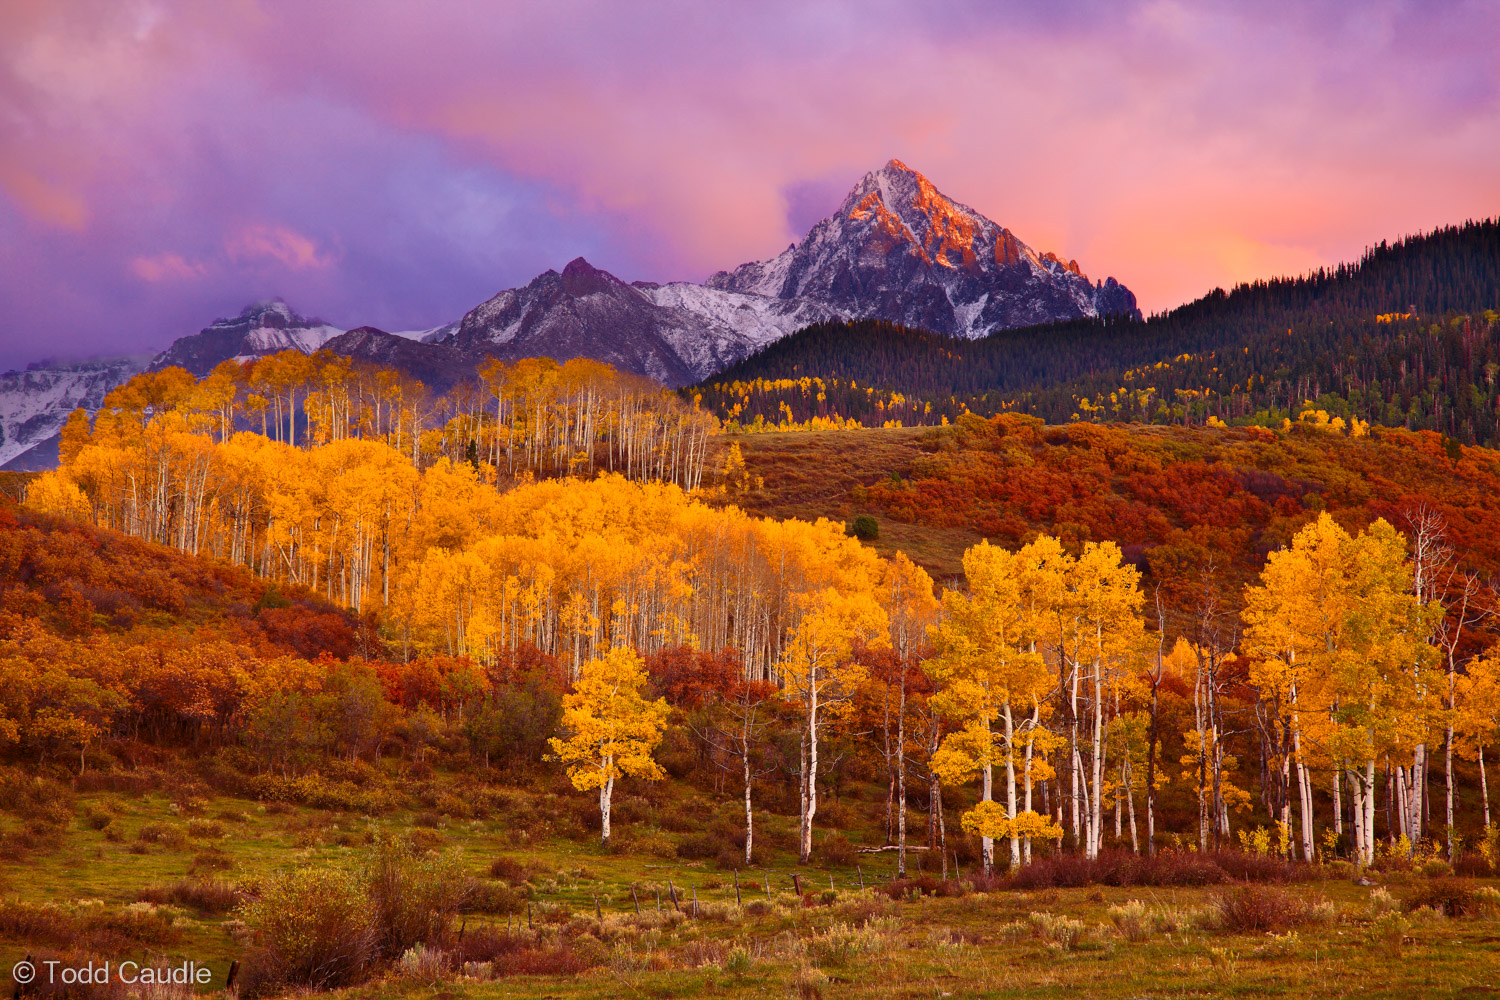 One of the most spectacular sunsets in memory lights the sky over Mount Sneffels on fire on a perfect fall evening.